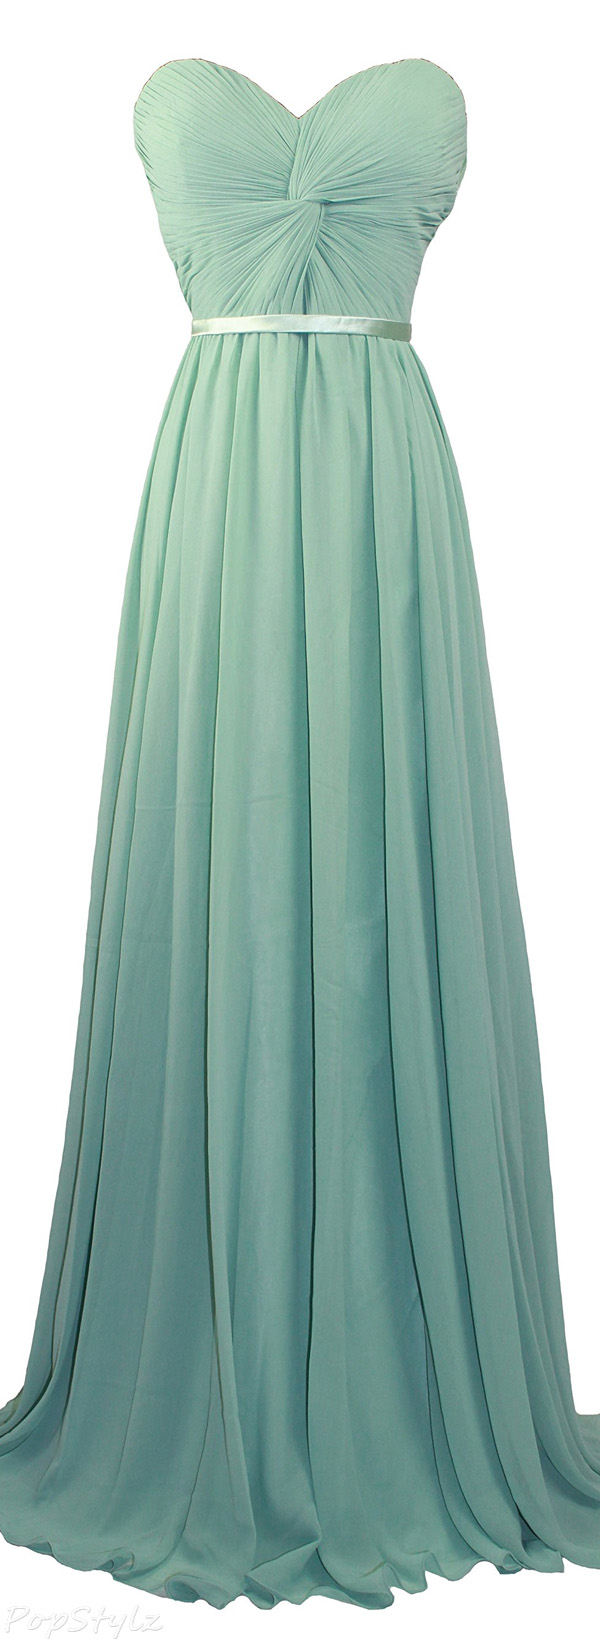 Meier Strapless Sweetheart Pleated Evening Gown